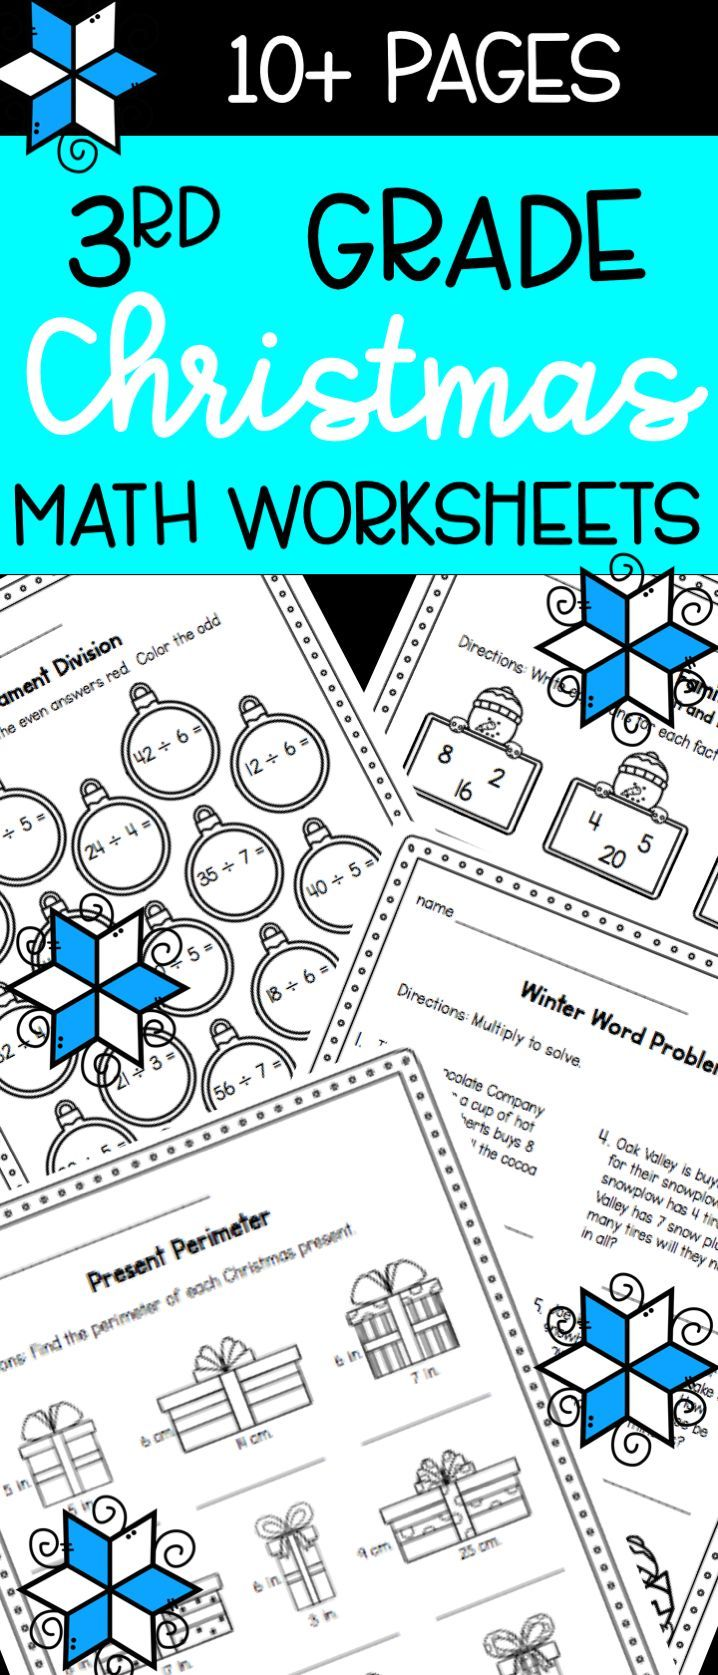 Workbooks » Much Ado About Nothing Worksheets - Free Printable ...